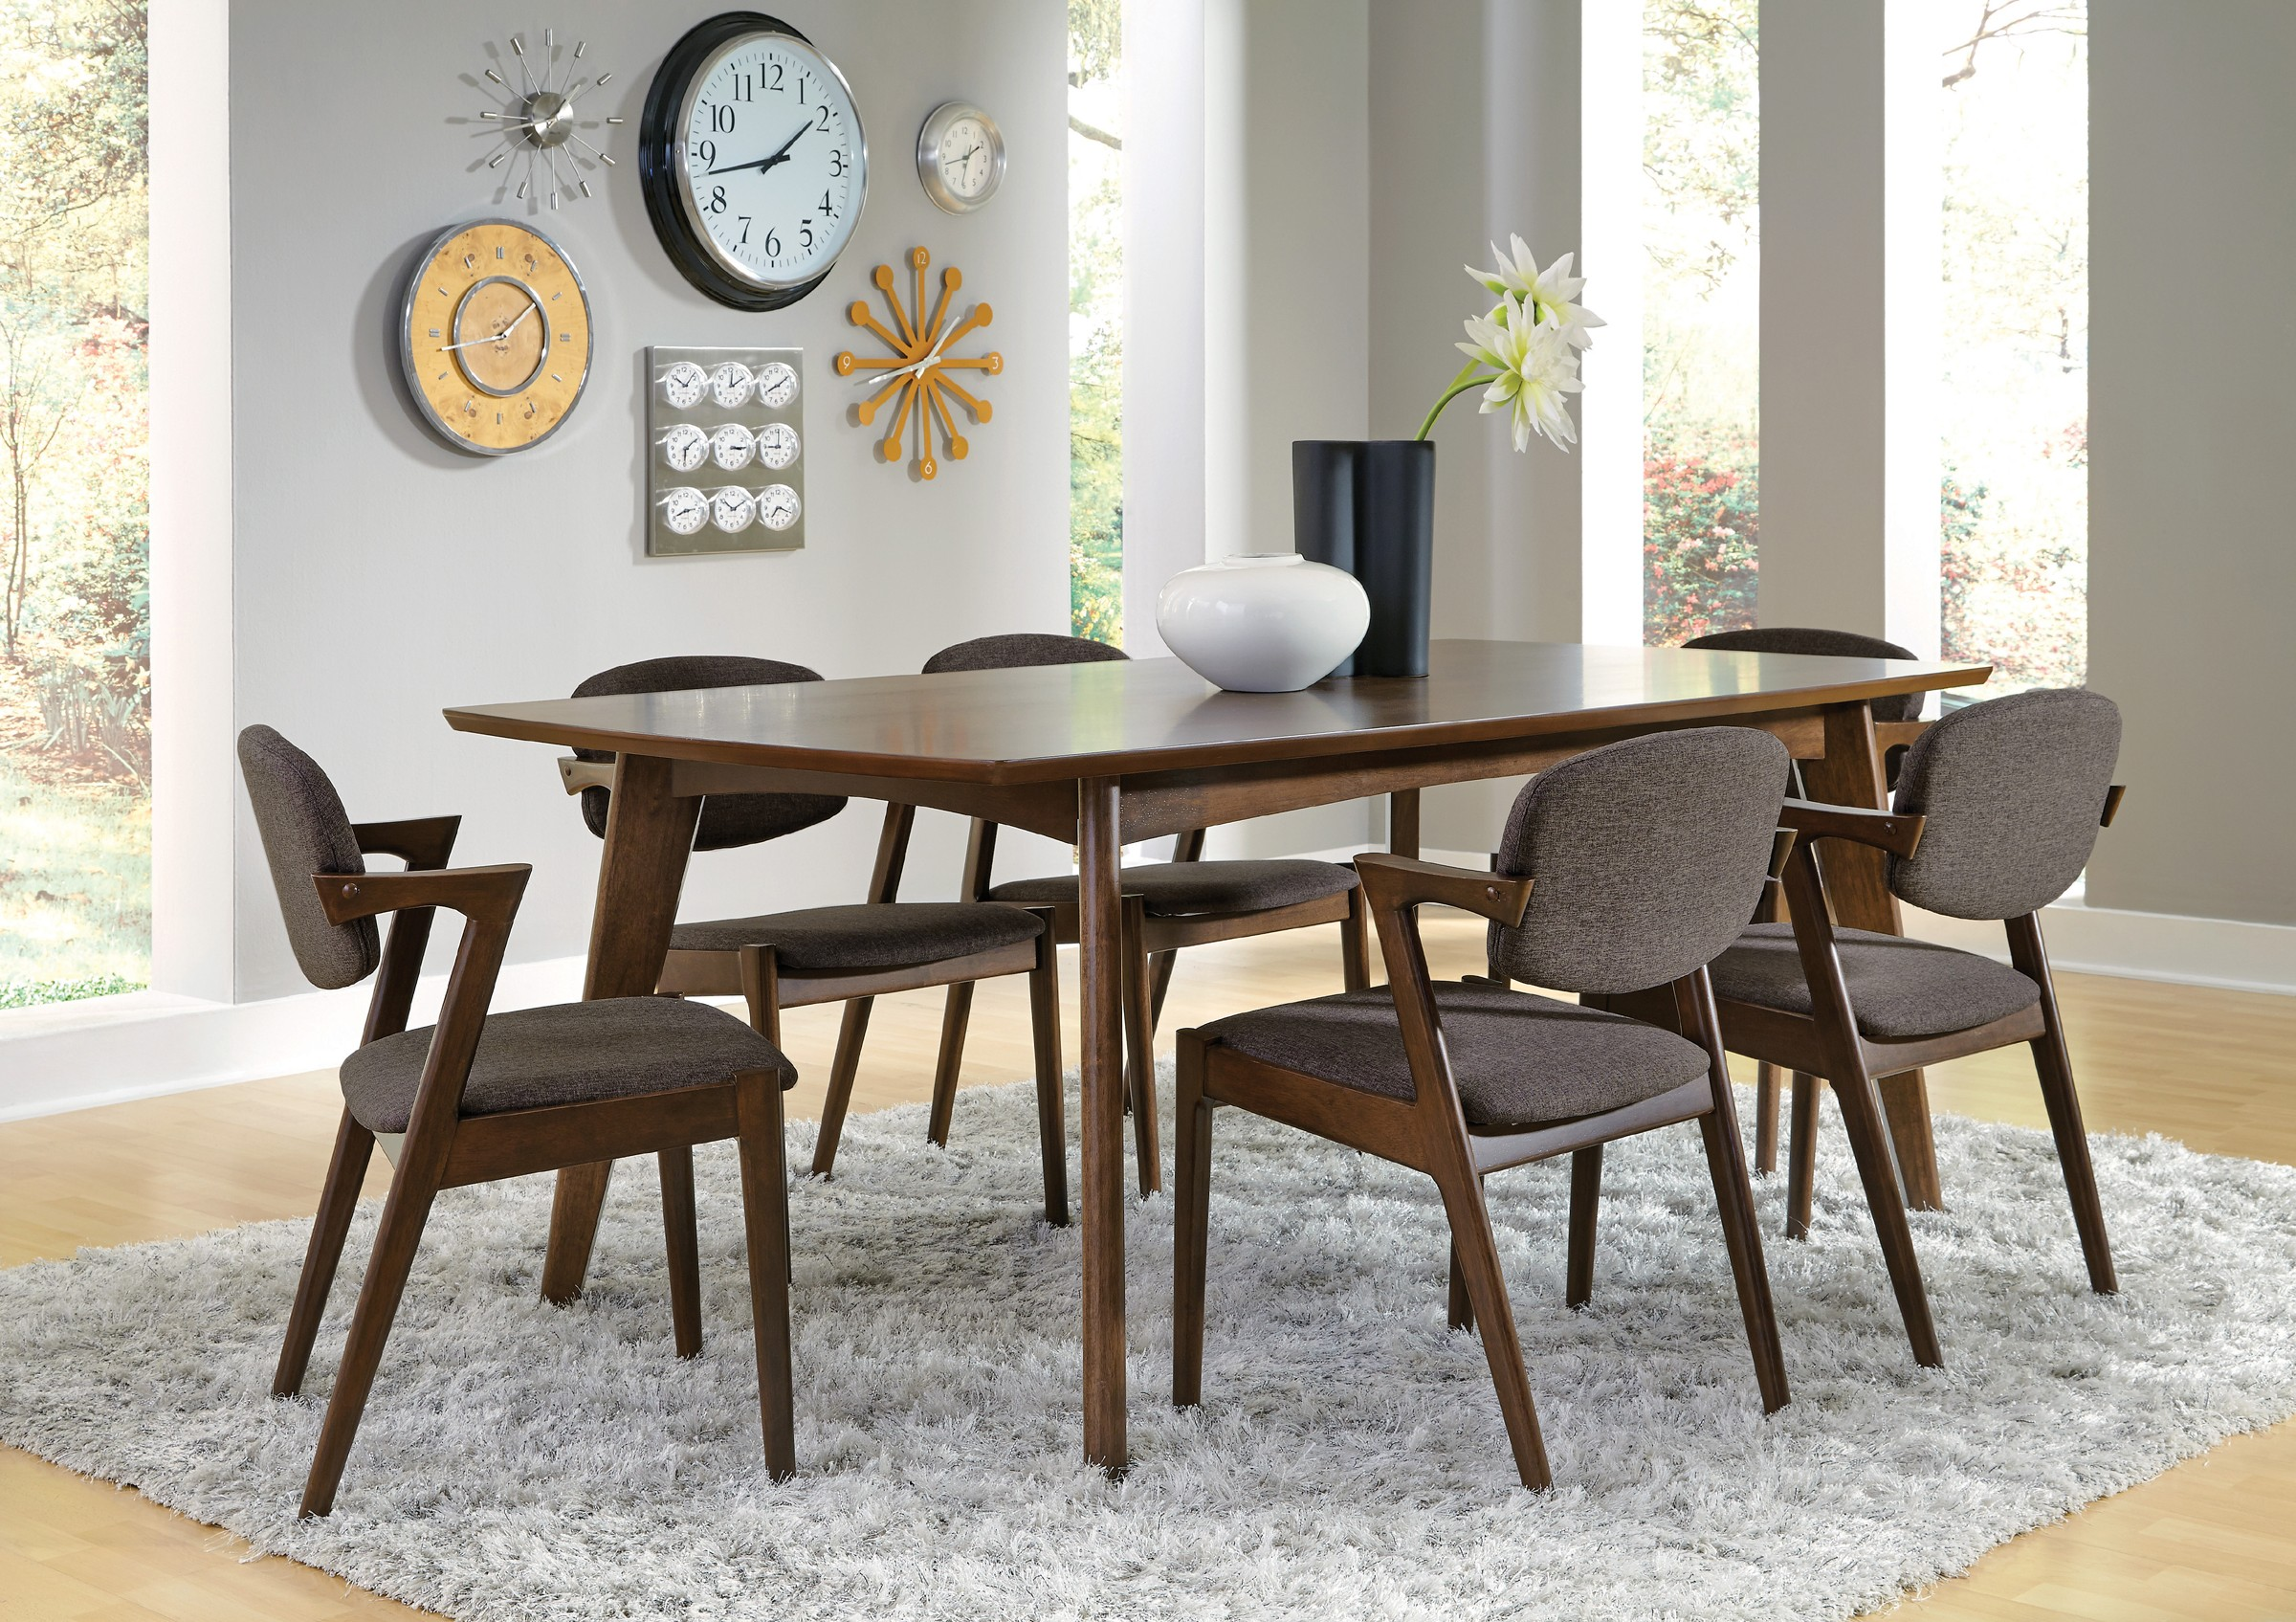 With An Exciting, Mid Century Modern Design, The Malone Collection Sarah 7 Piece  Dining Set Will Make A Bold Statement In Your Contemporary Dining Room.